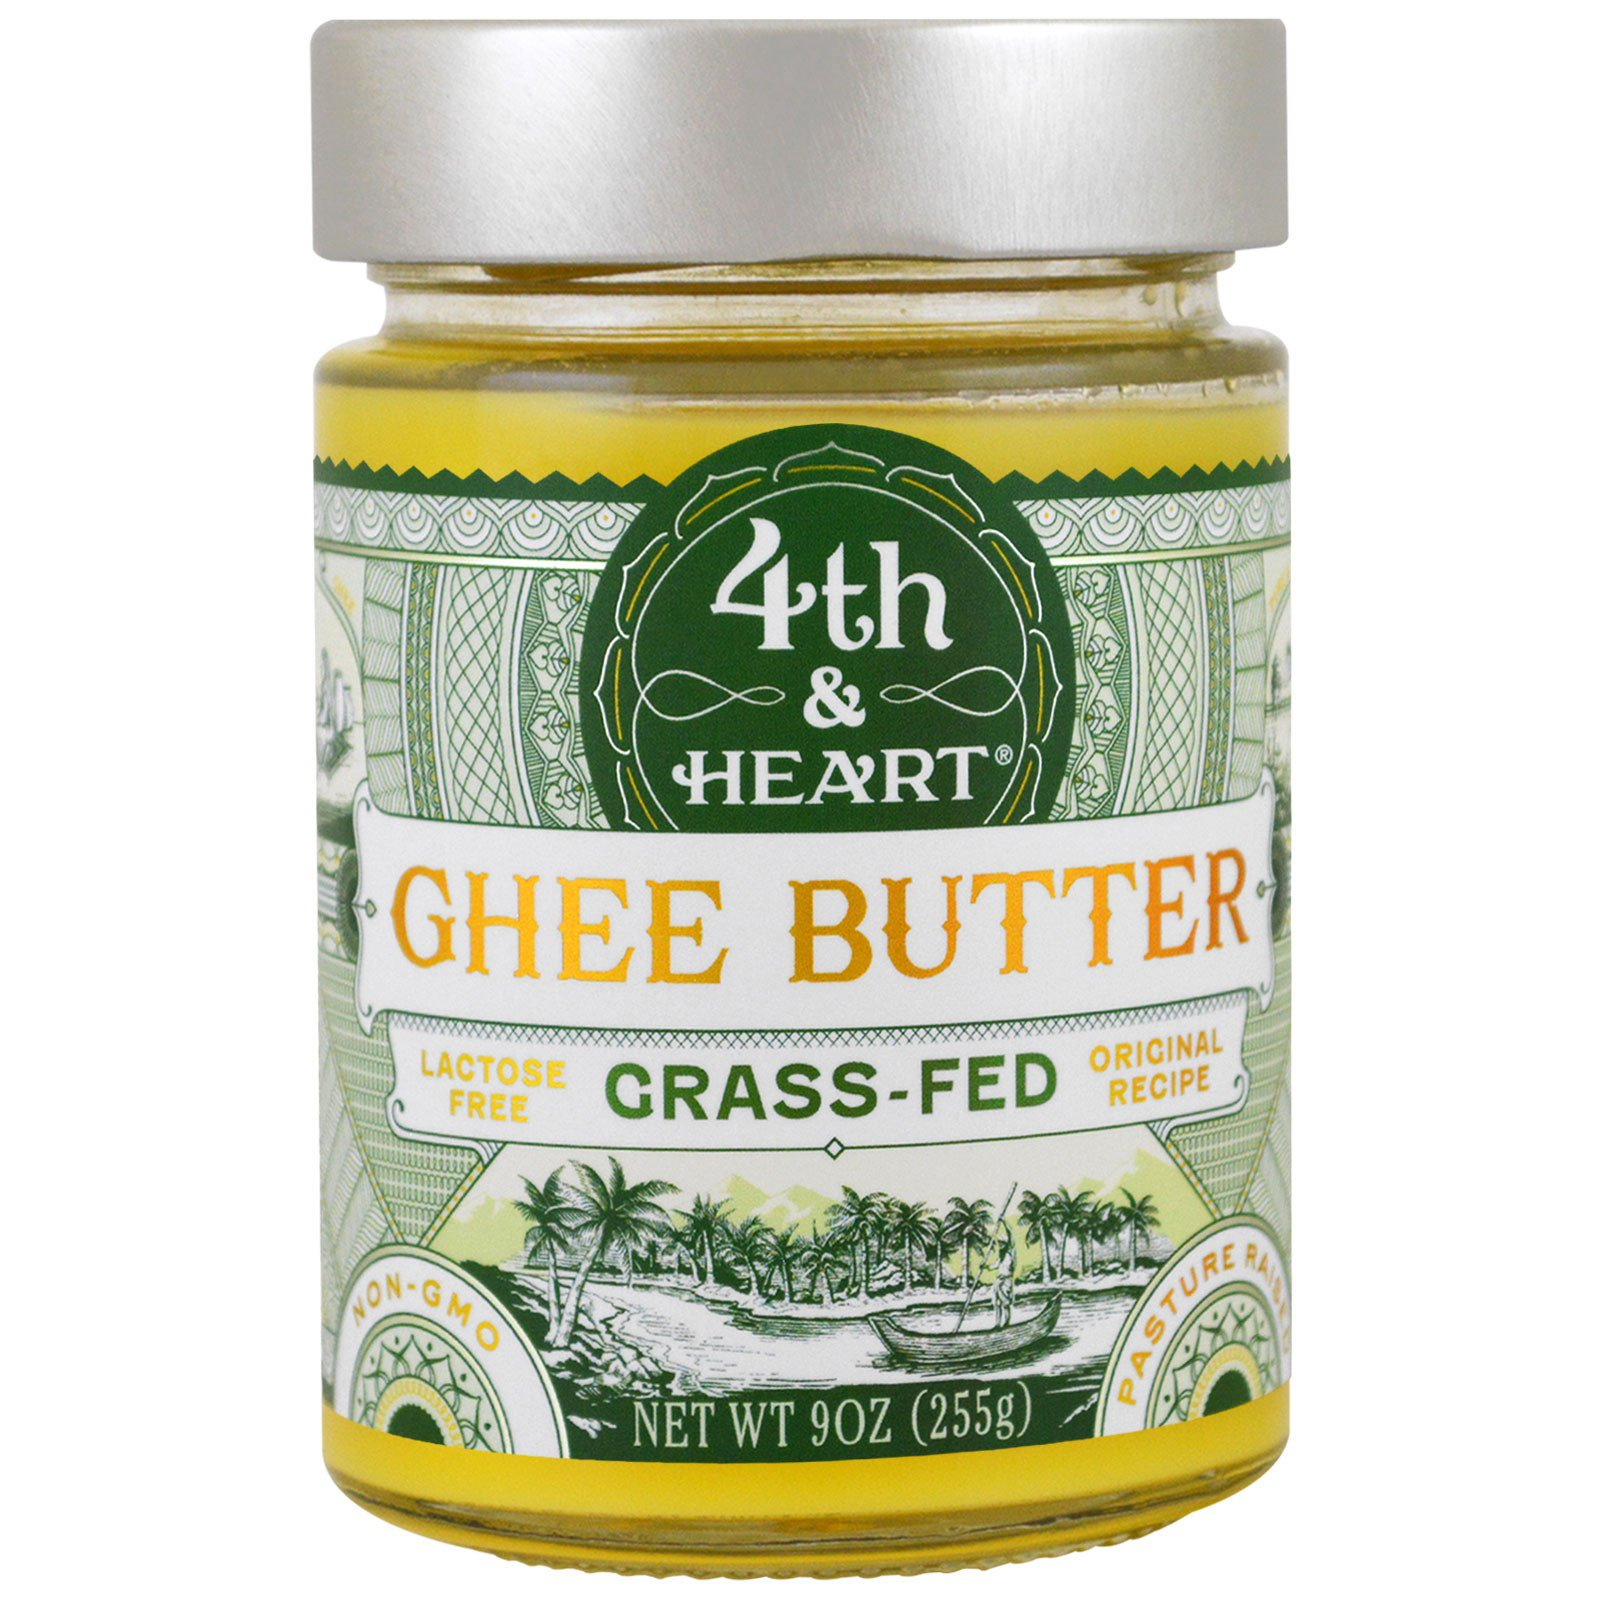 4th & Heart Grass-Fed Ghee butter.